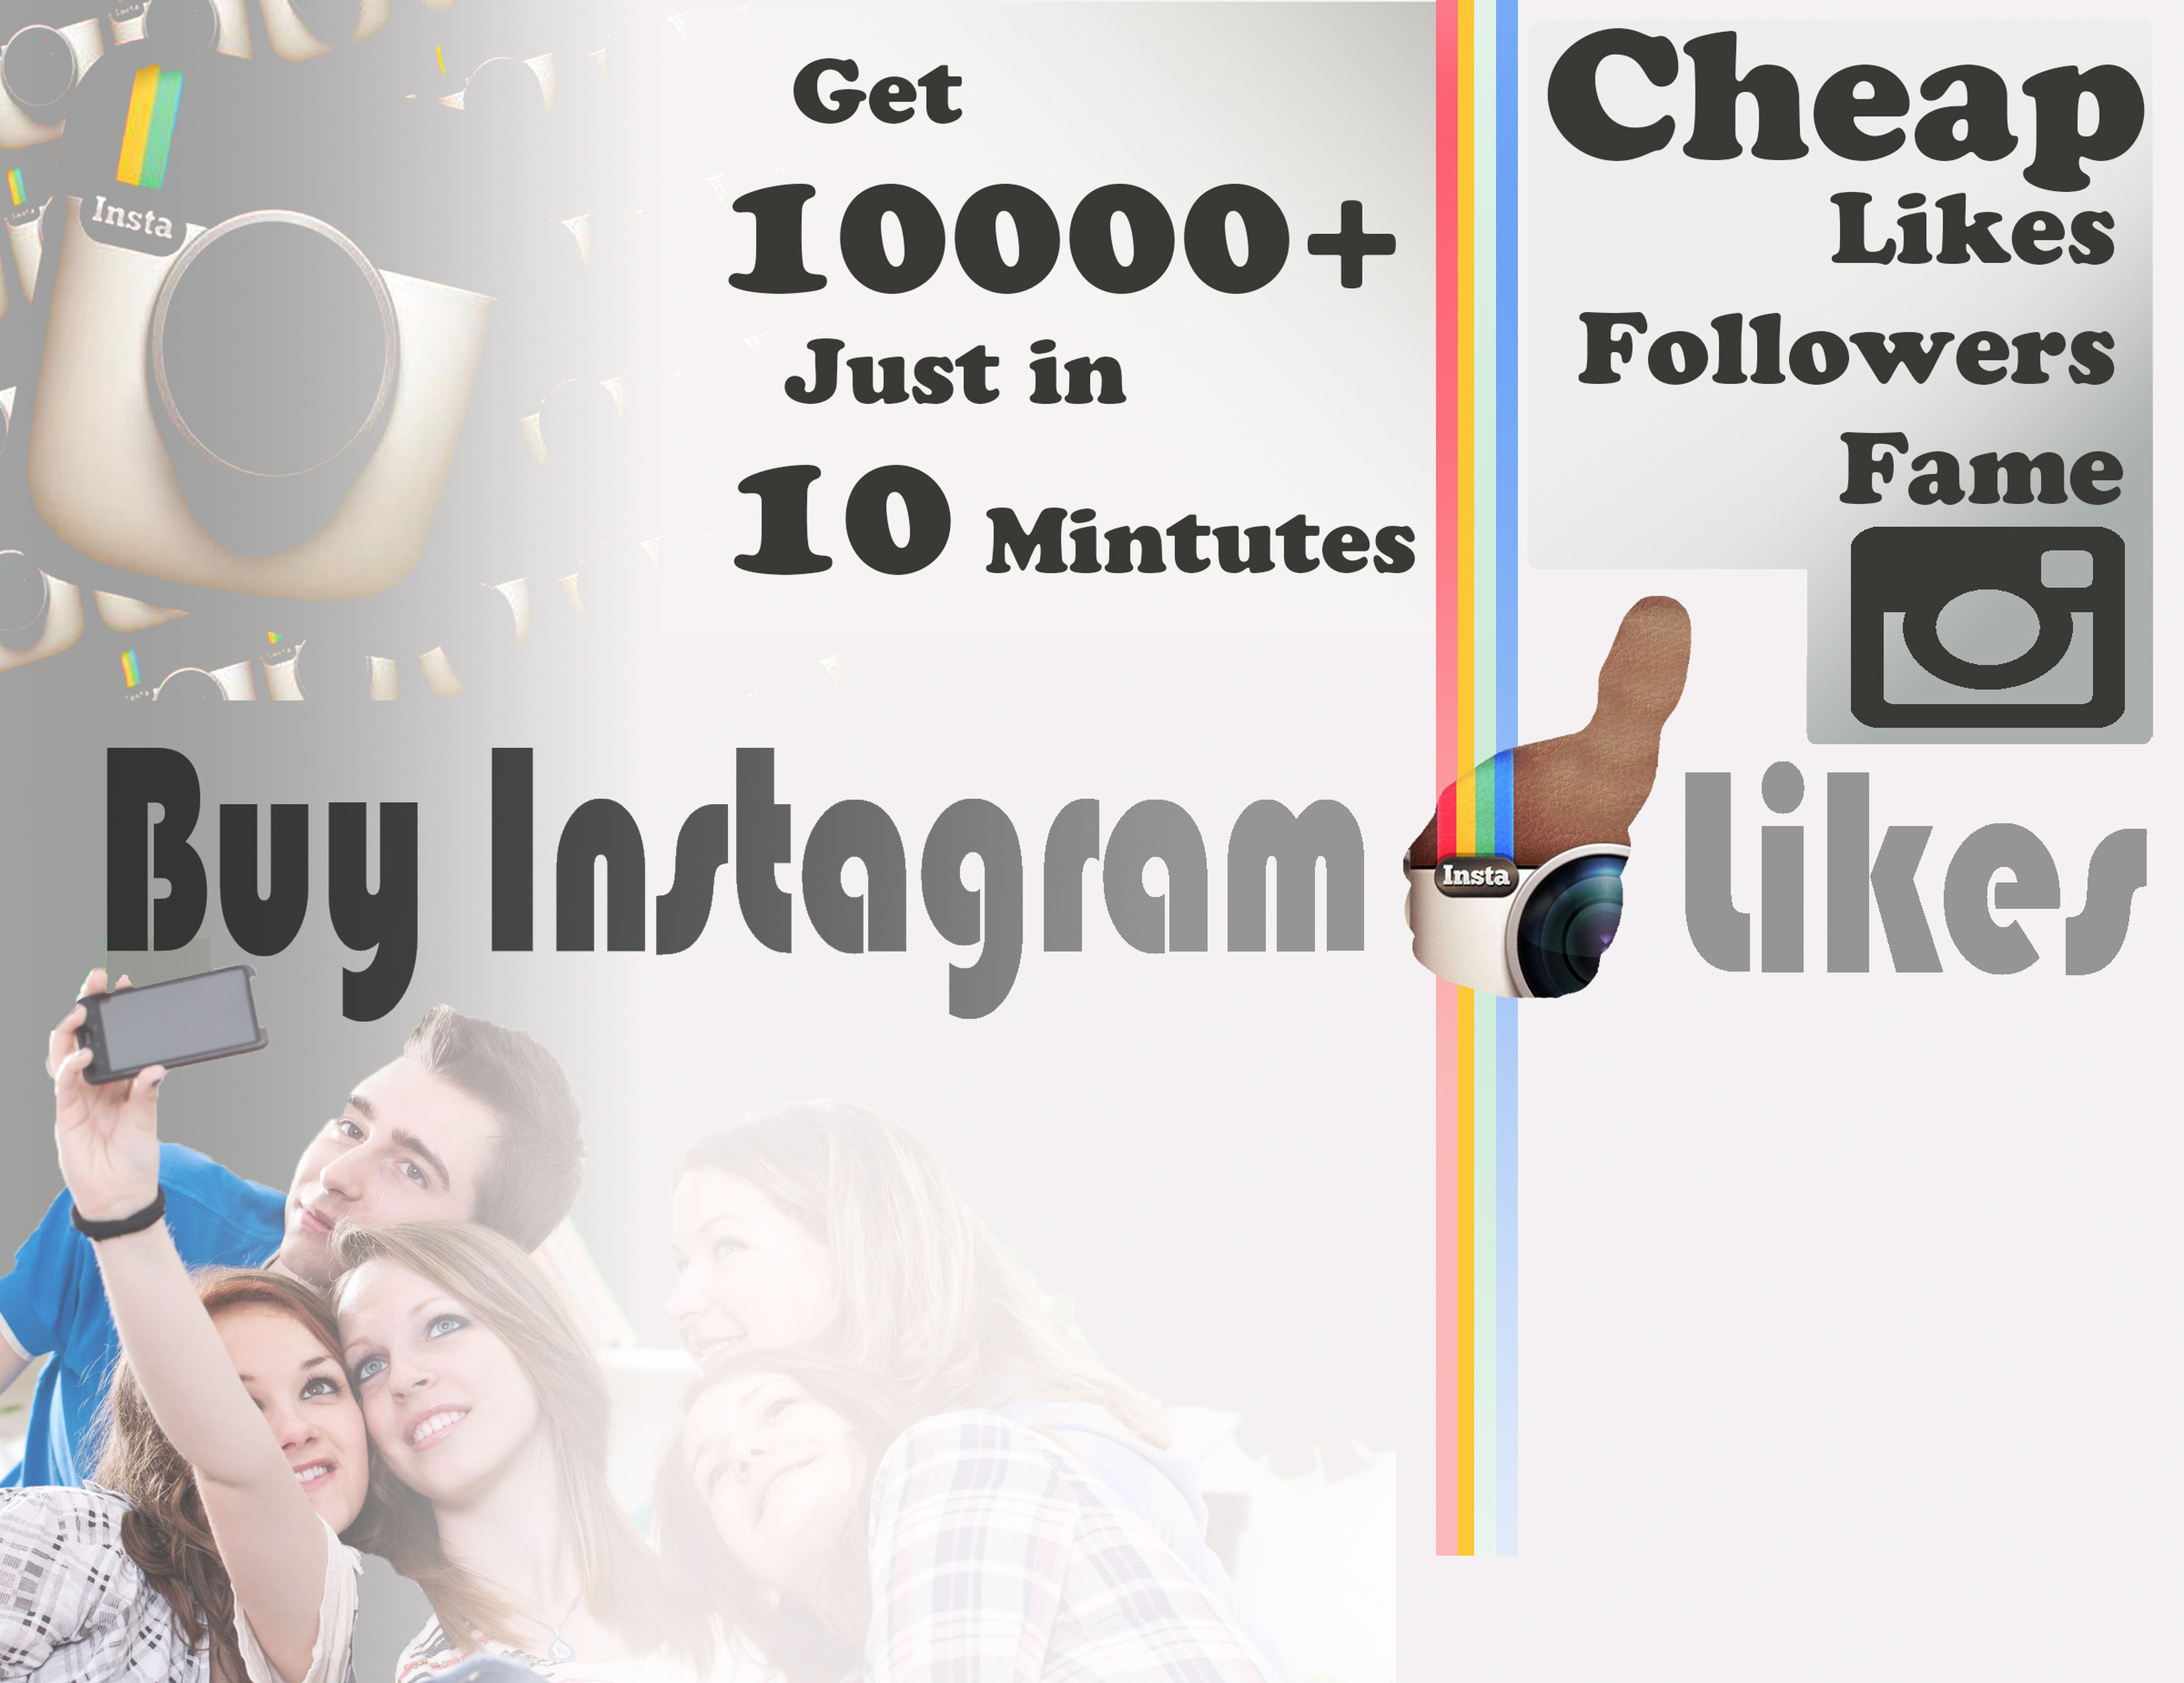 Buy Instagram Likes cheap from We have a huge network of followers willing to share your pins to their own friends and followers. Working with us is fast an easy! Increase the organic following of your Instagram audience through Social Envy with the correct social media strategies. We pride ourselves in being one of the cheapest organic Instagram growing services on the market. Buy Instagram Followers Buy Instagram Li Buying Instagram Followers Buying Instagram Likes Cheap Instagram Followers Cheap Instagram Likes